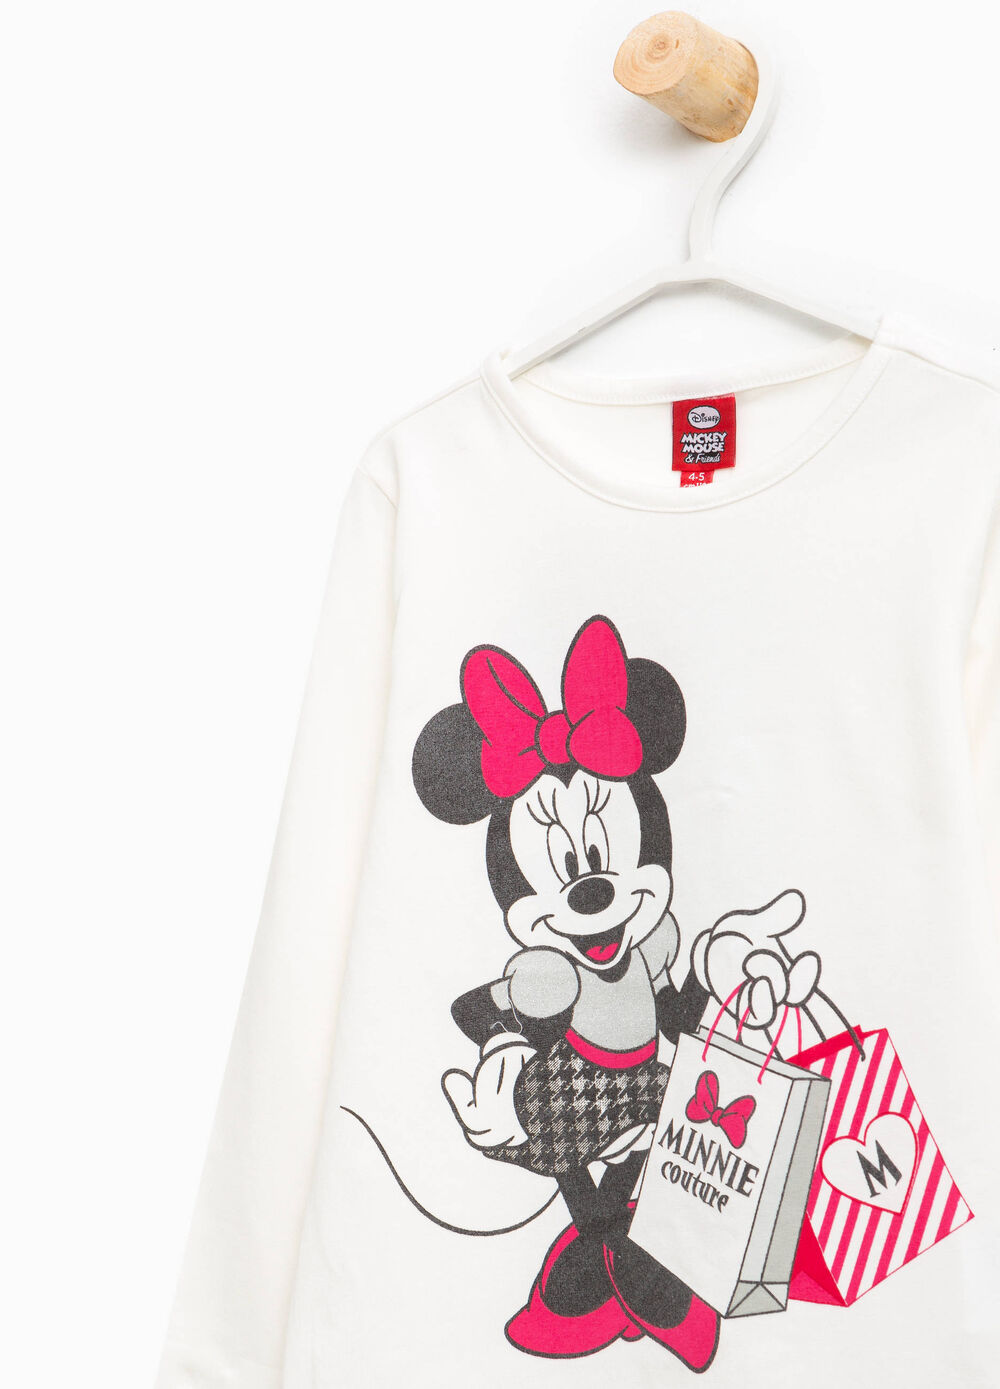 Cotton T-shirt with Minnie Mouse print